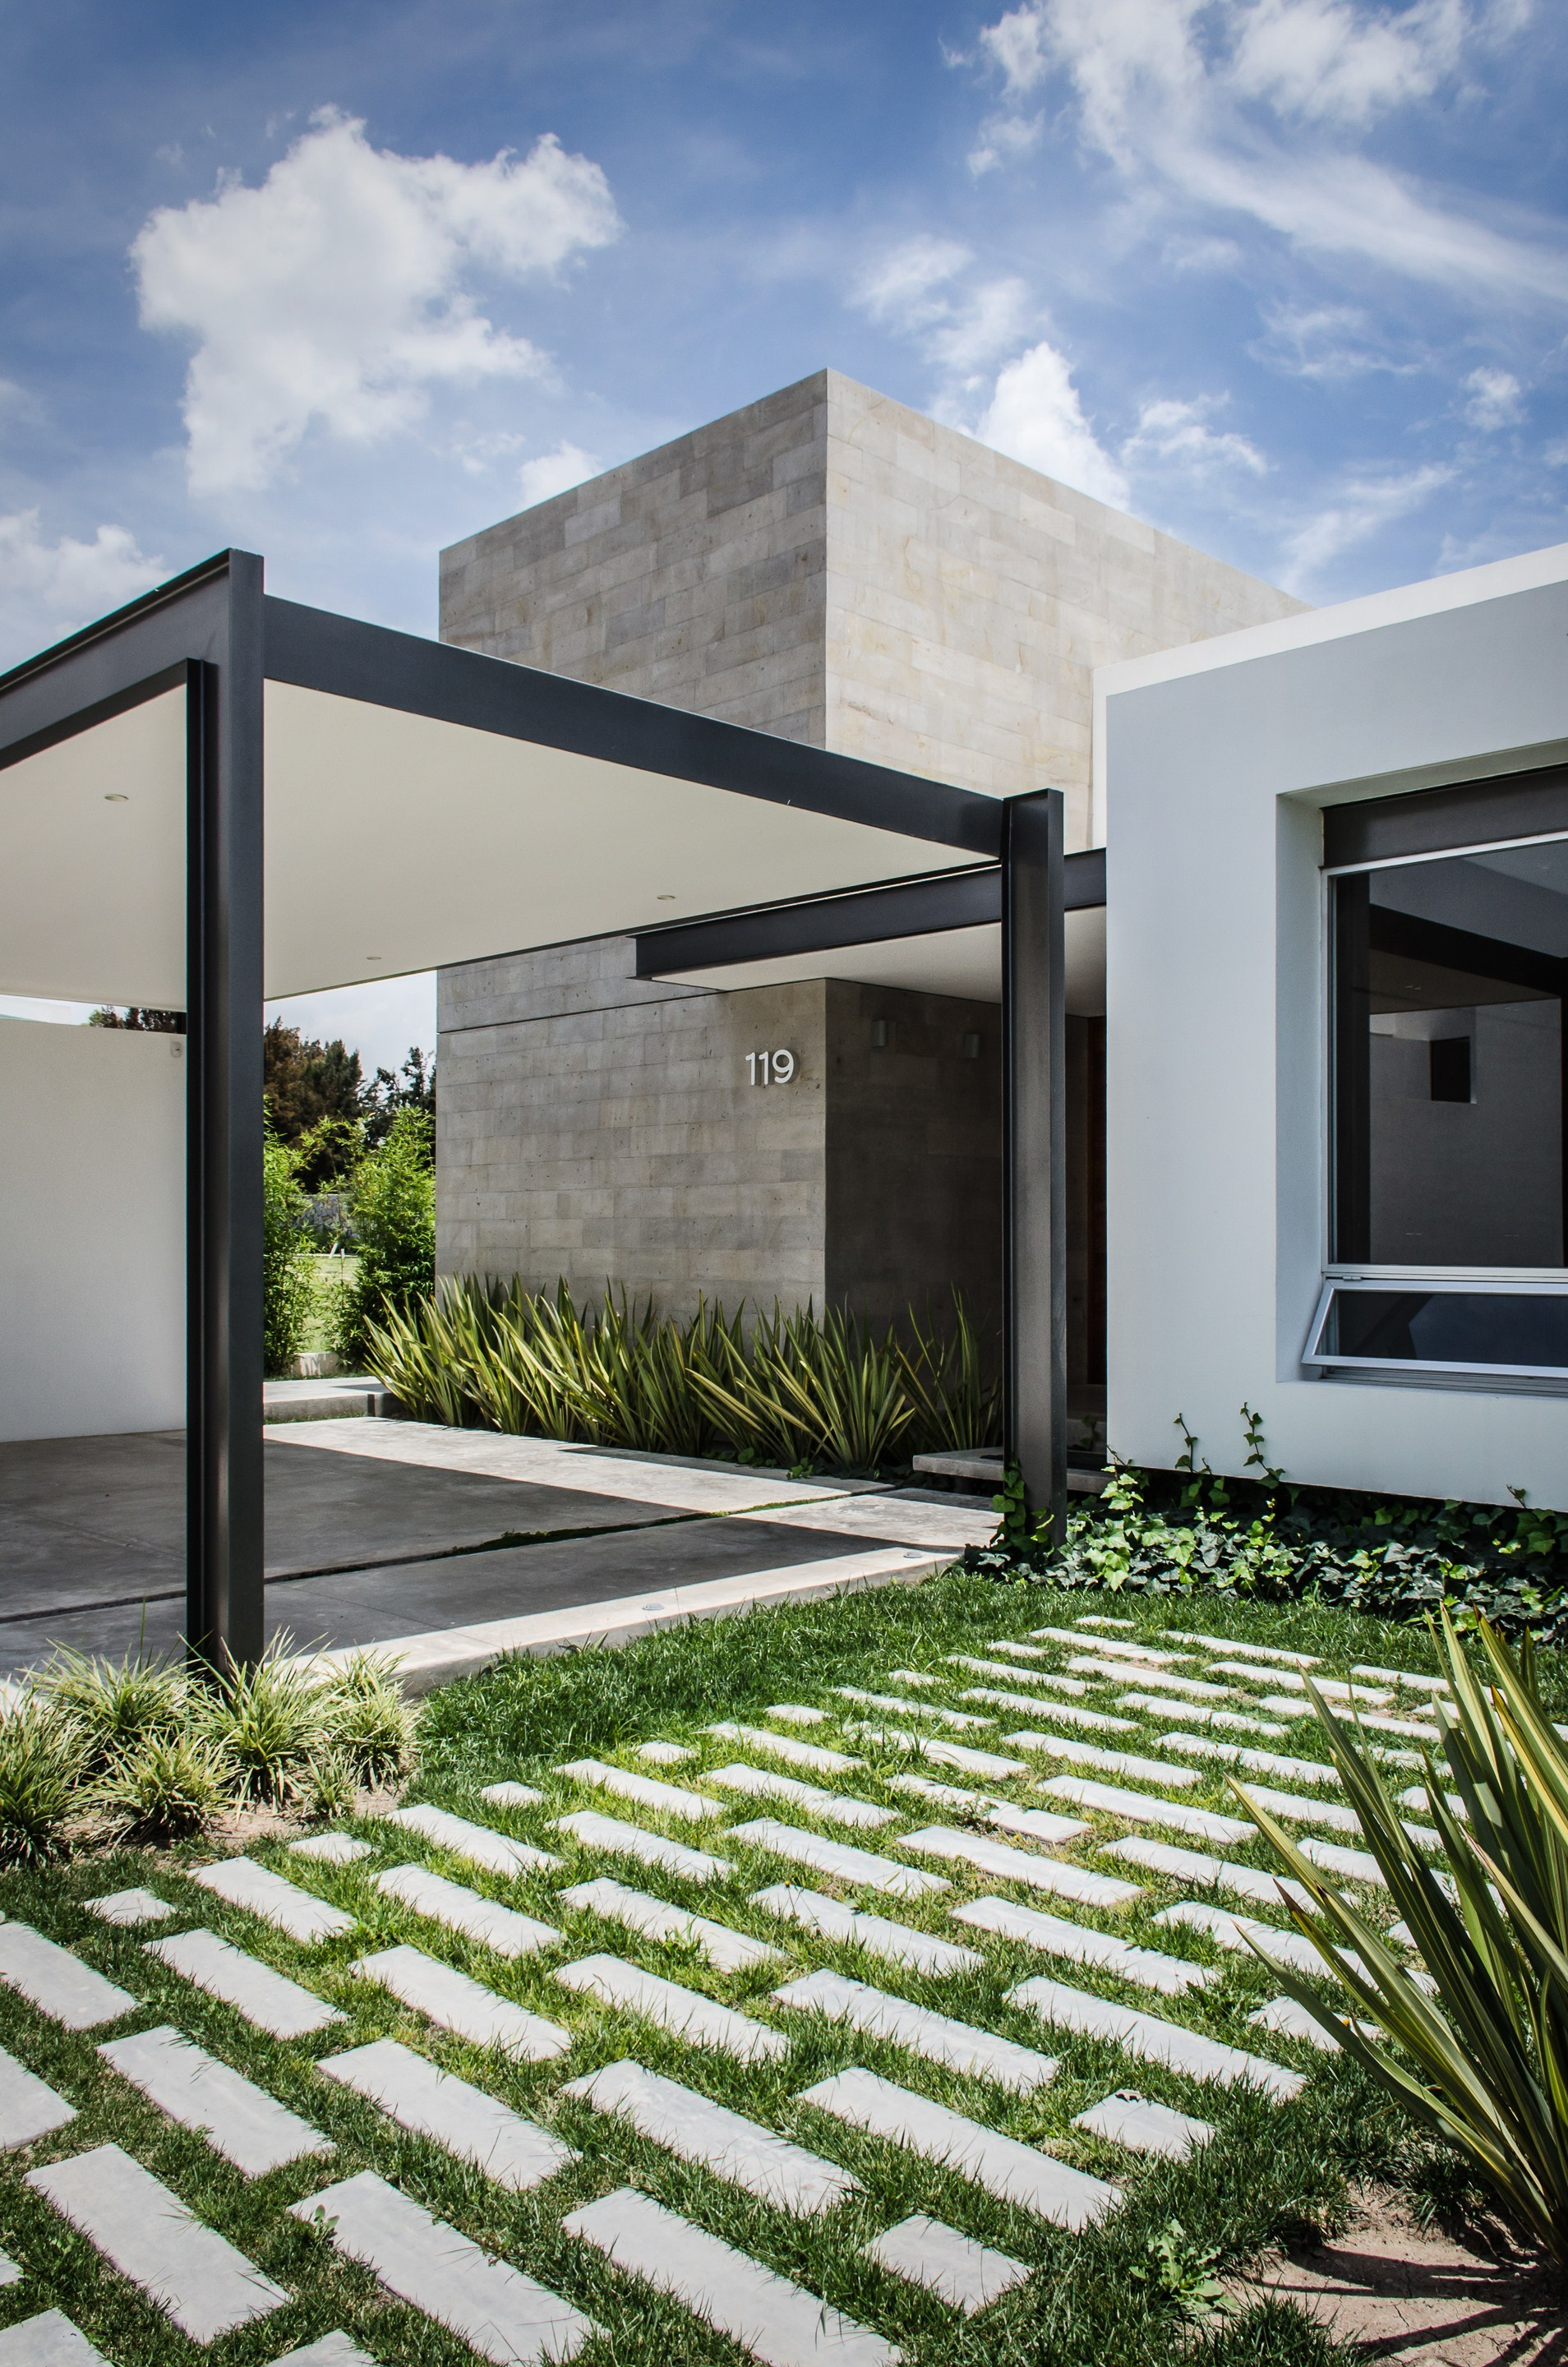 Gallery of t02 adi arquitectura y dise o interior 2 for Blog arquitectura y diseno